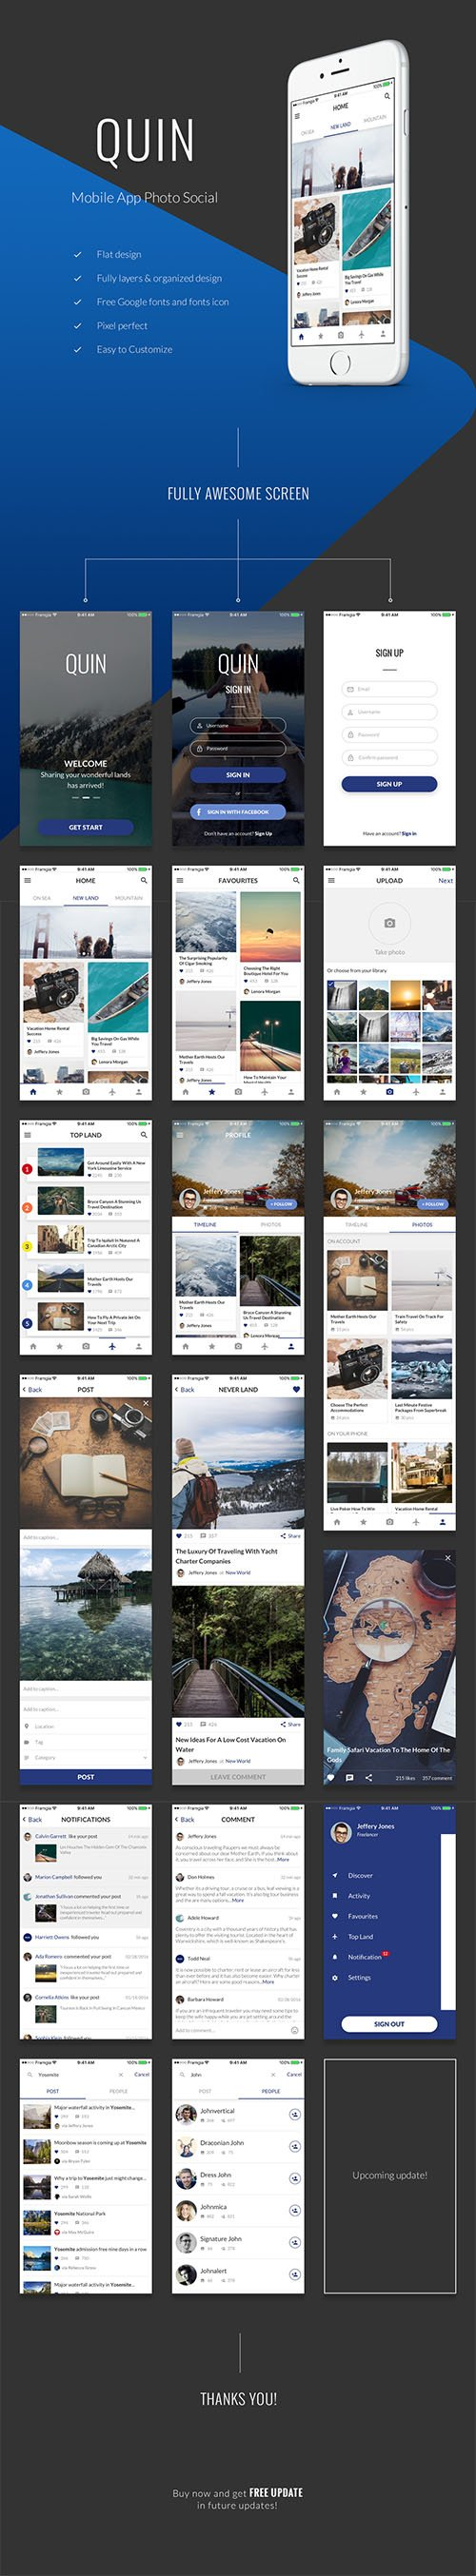 QUIN UI Kit - Photo & Social Mobile Application UI Kit